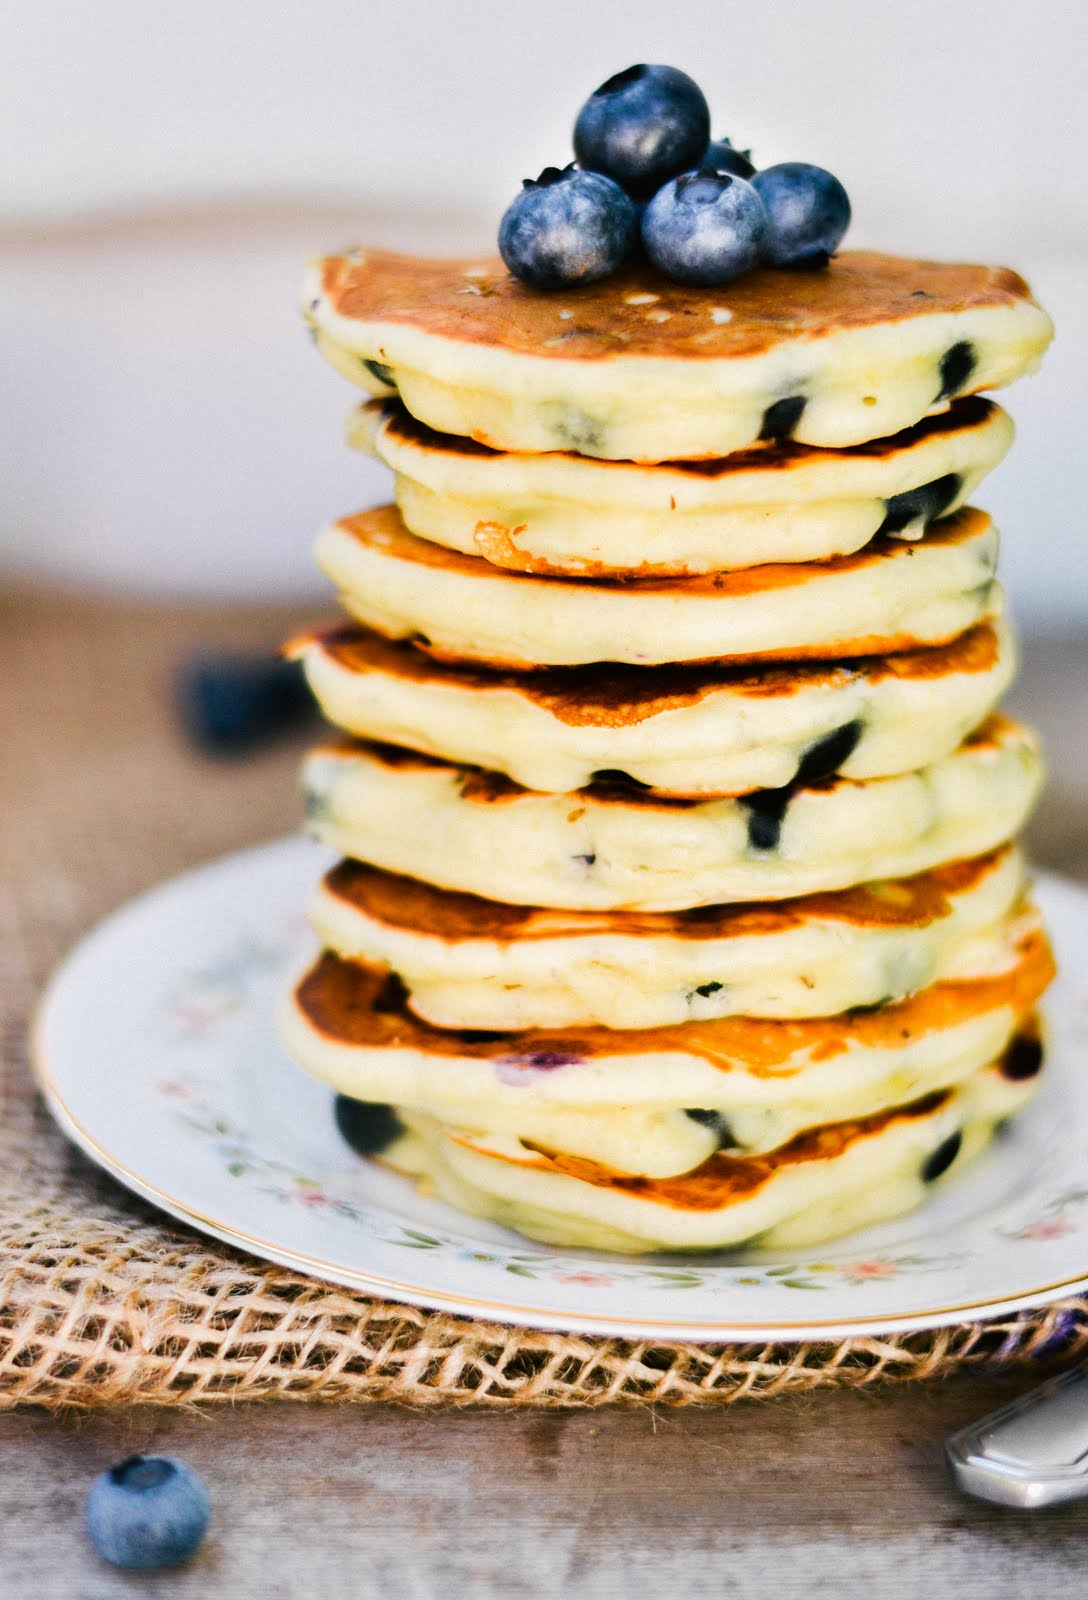 tasty tuesday: lemon blueberry pancakes